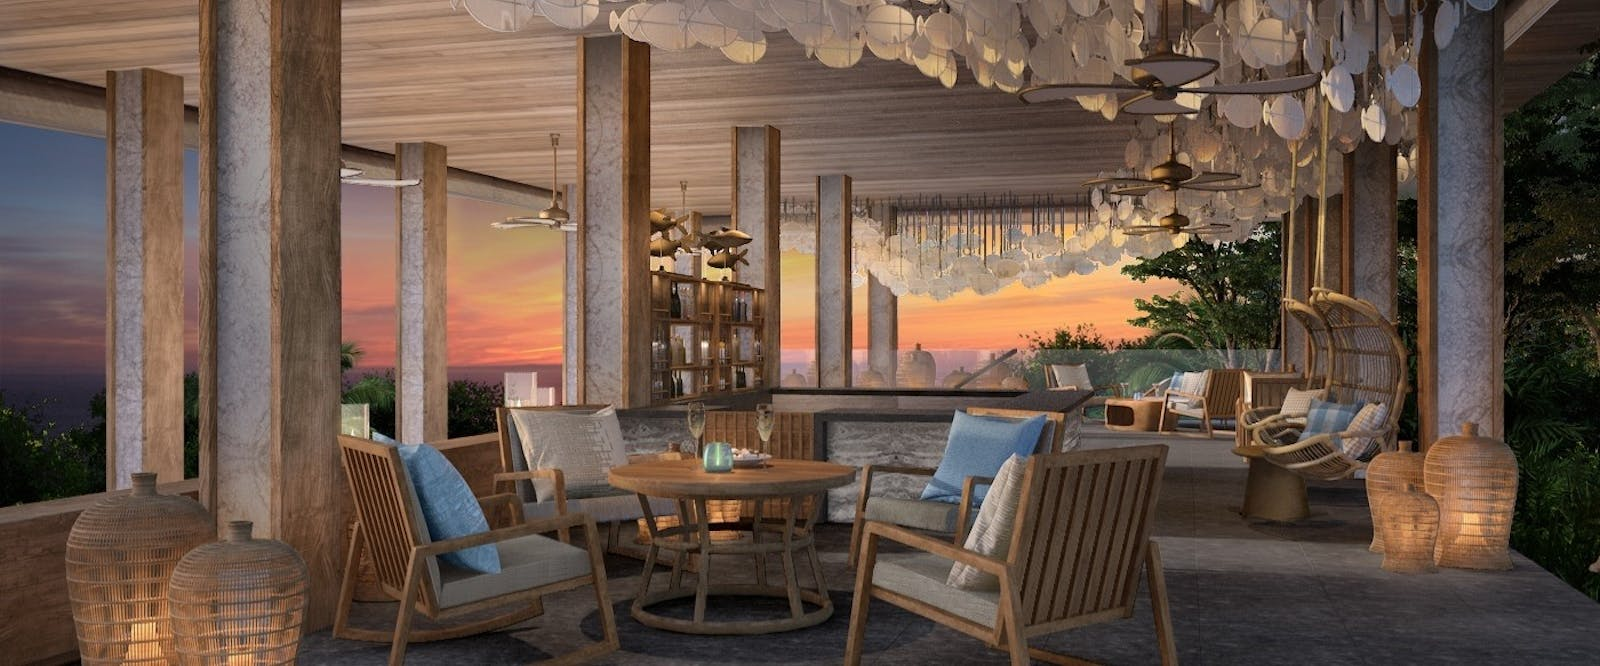 Sunset Bar at Six Senses Krabey Island, Cambodia